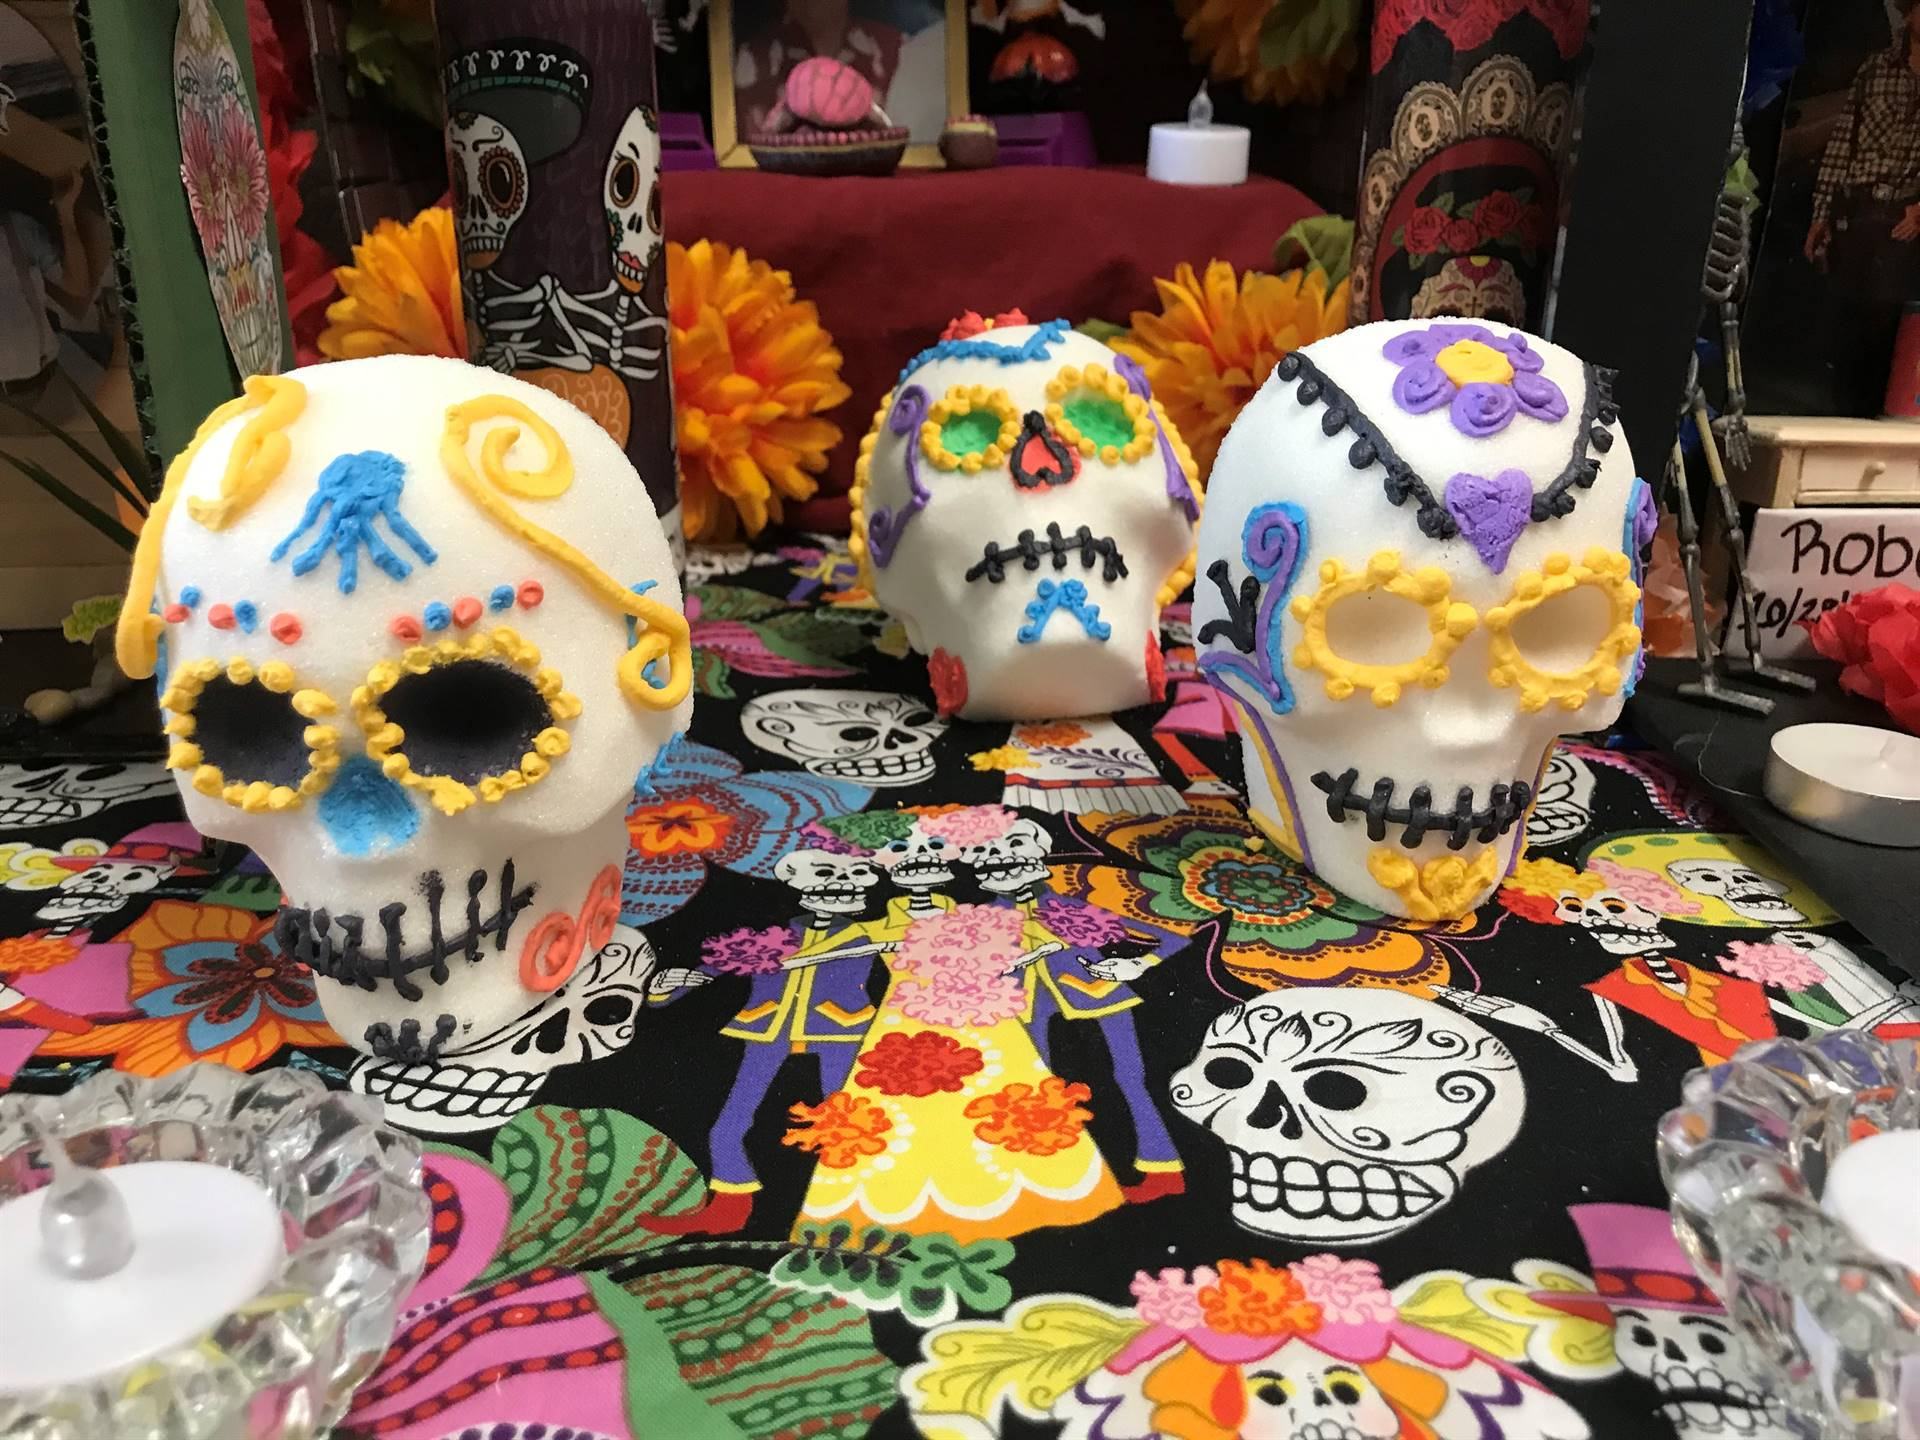 Spanish Classes Day Of Dead 20191031 (6)